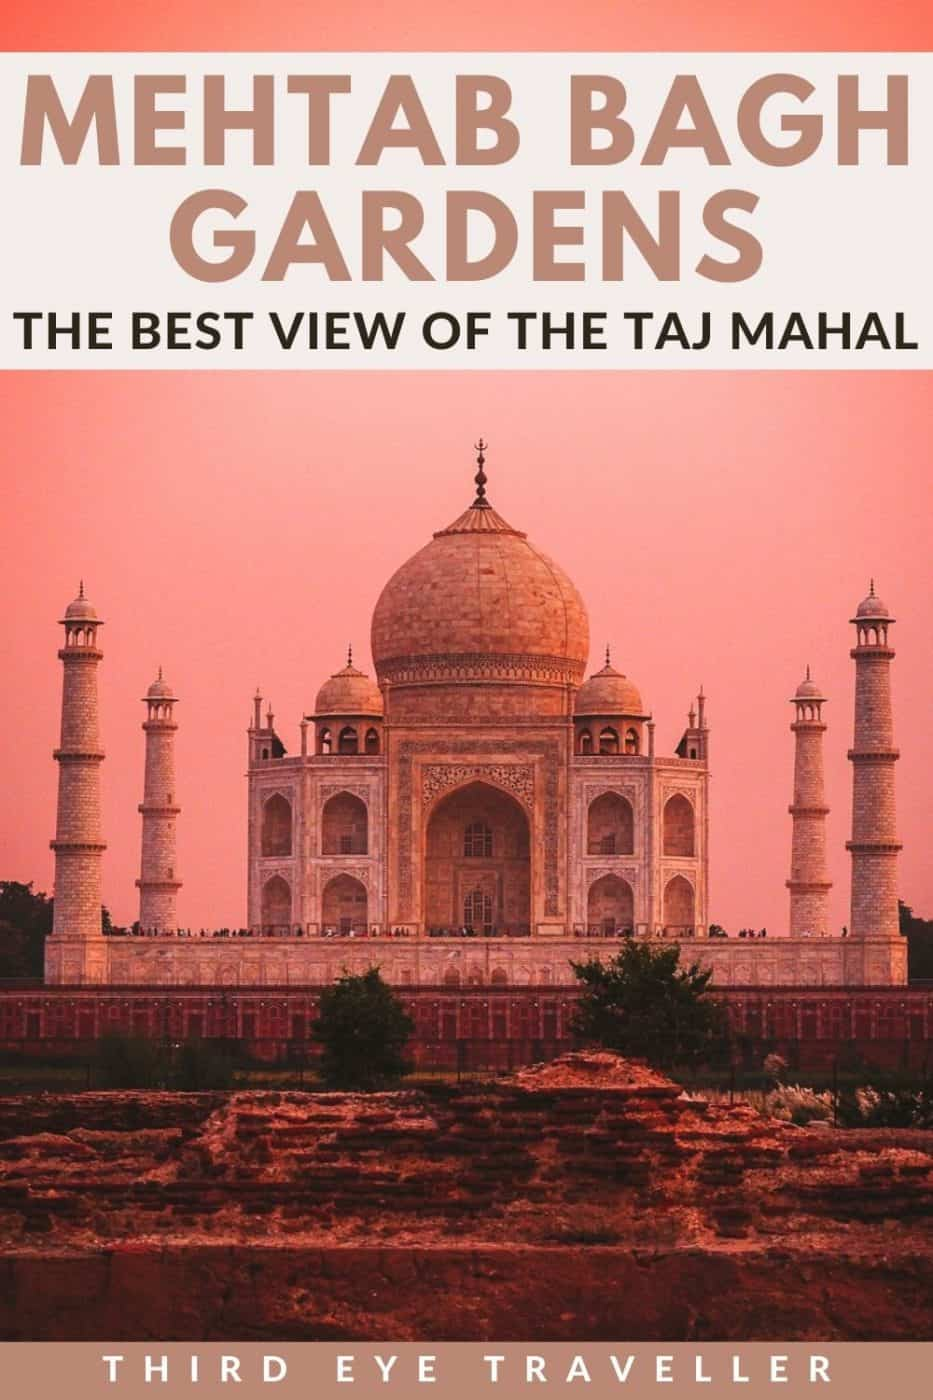 Mehtab Bagh Gardens the best view of the Taj Mahal